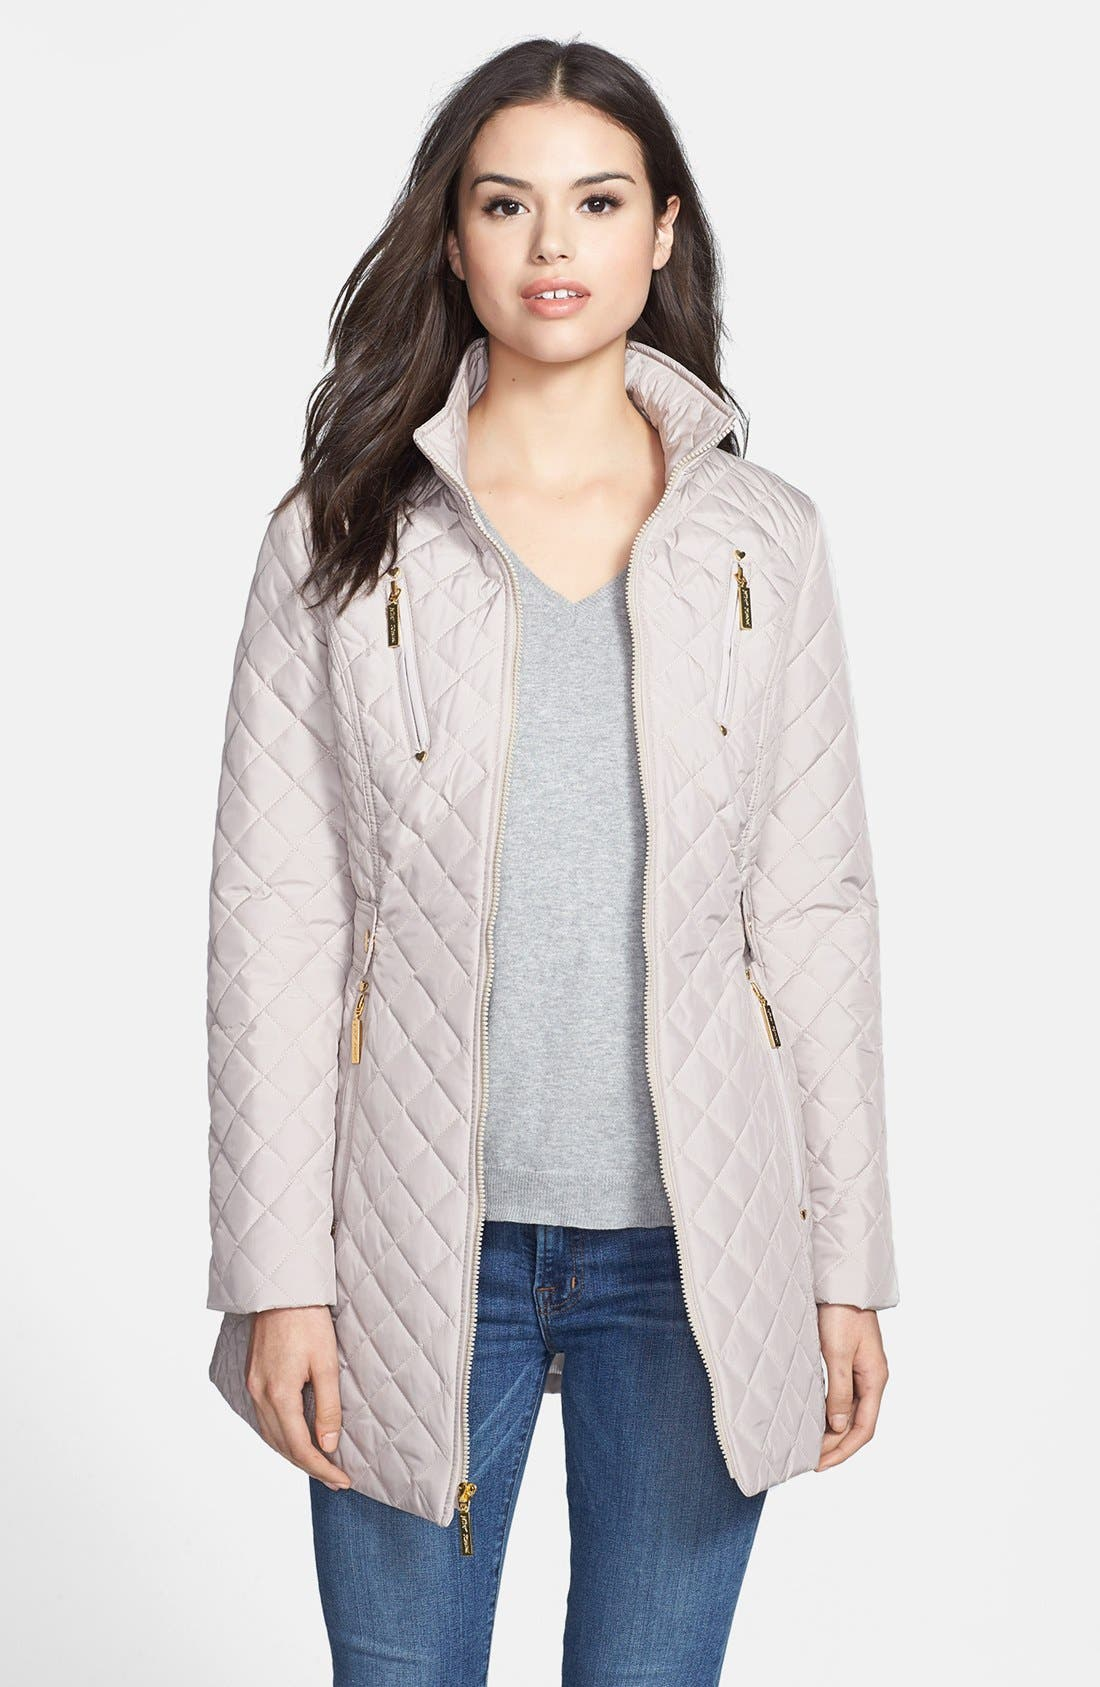 Alternate Image 1 Selected - Betsey Johnson Lace-Up Back Quilted Jacket (Online Only)